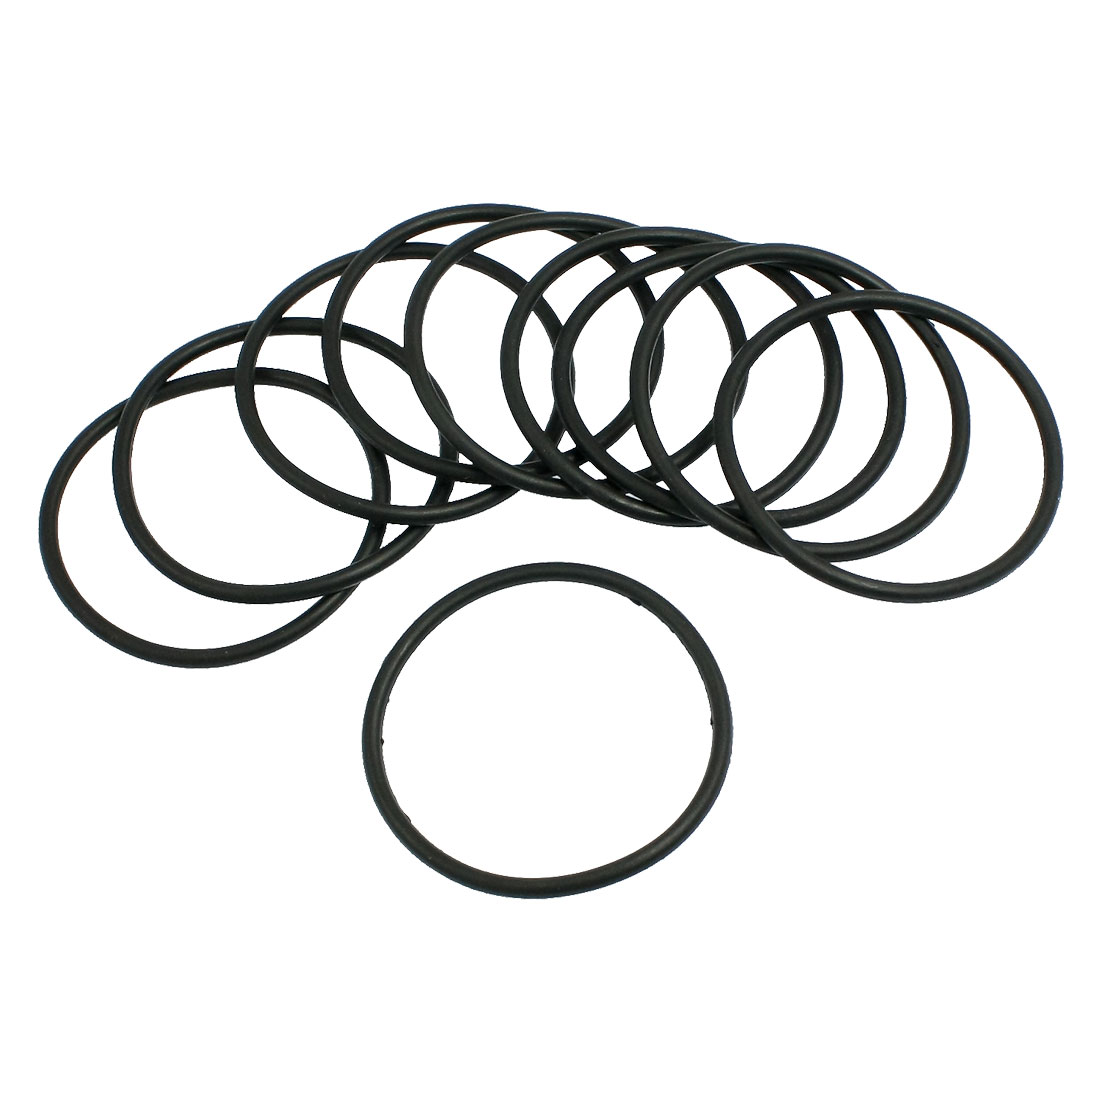 10 Pcs 55mm x 3.1mm Black Silicone O Rings Oil Seals Gaskets